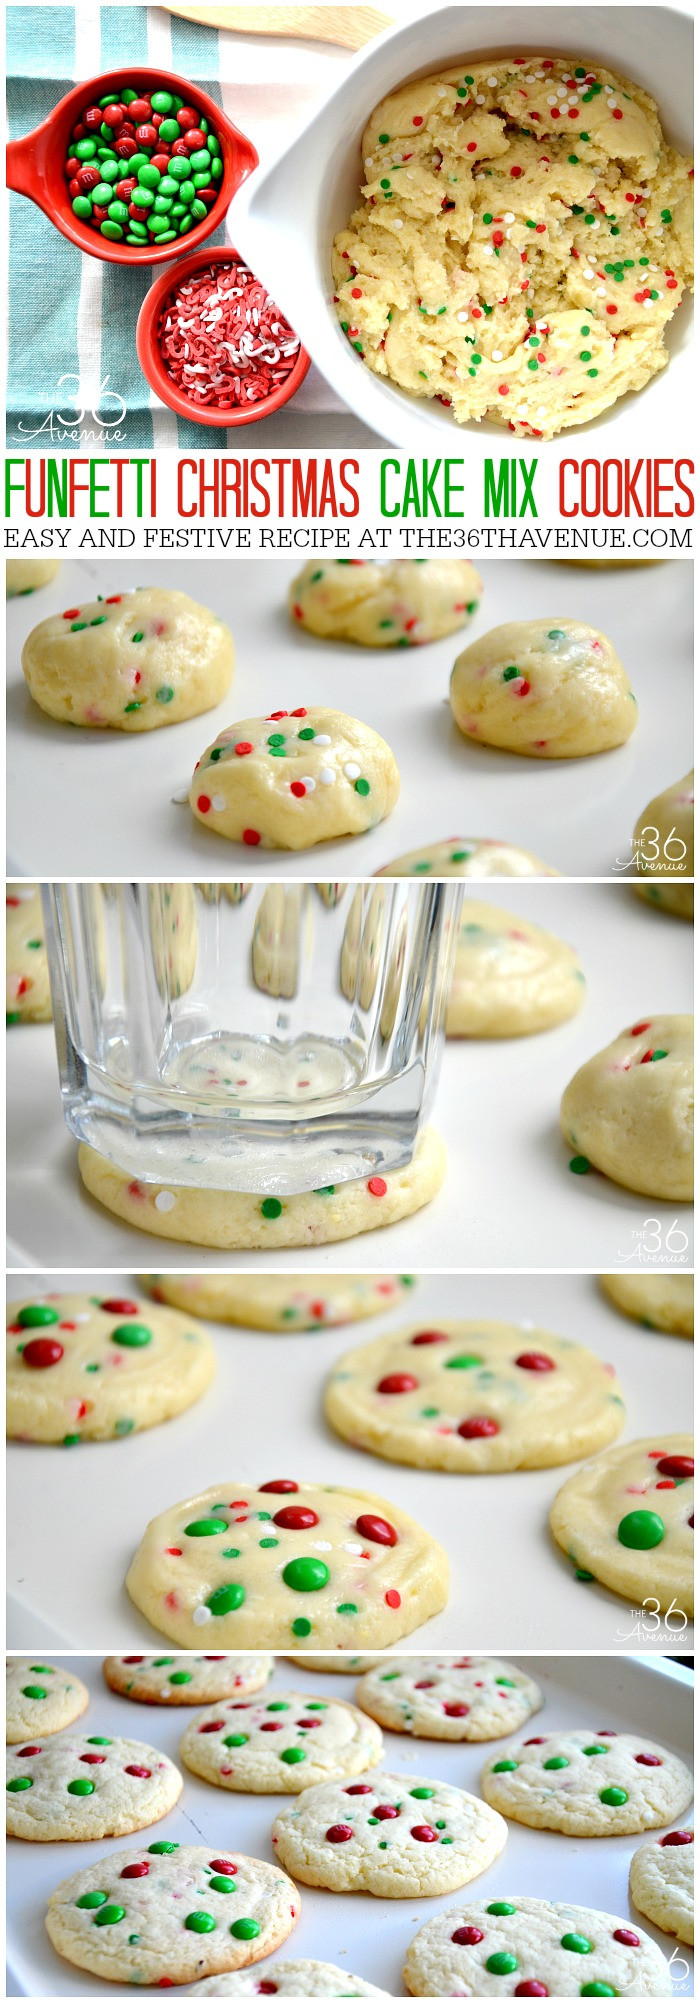 Easy To Make Christmas Cookies  Christmas Cookies Funfetti Cookies The 36th AVENUE